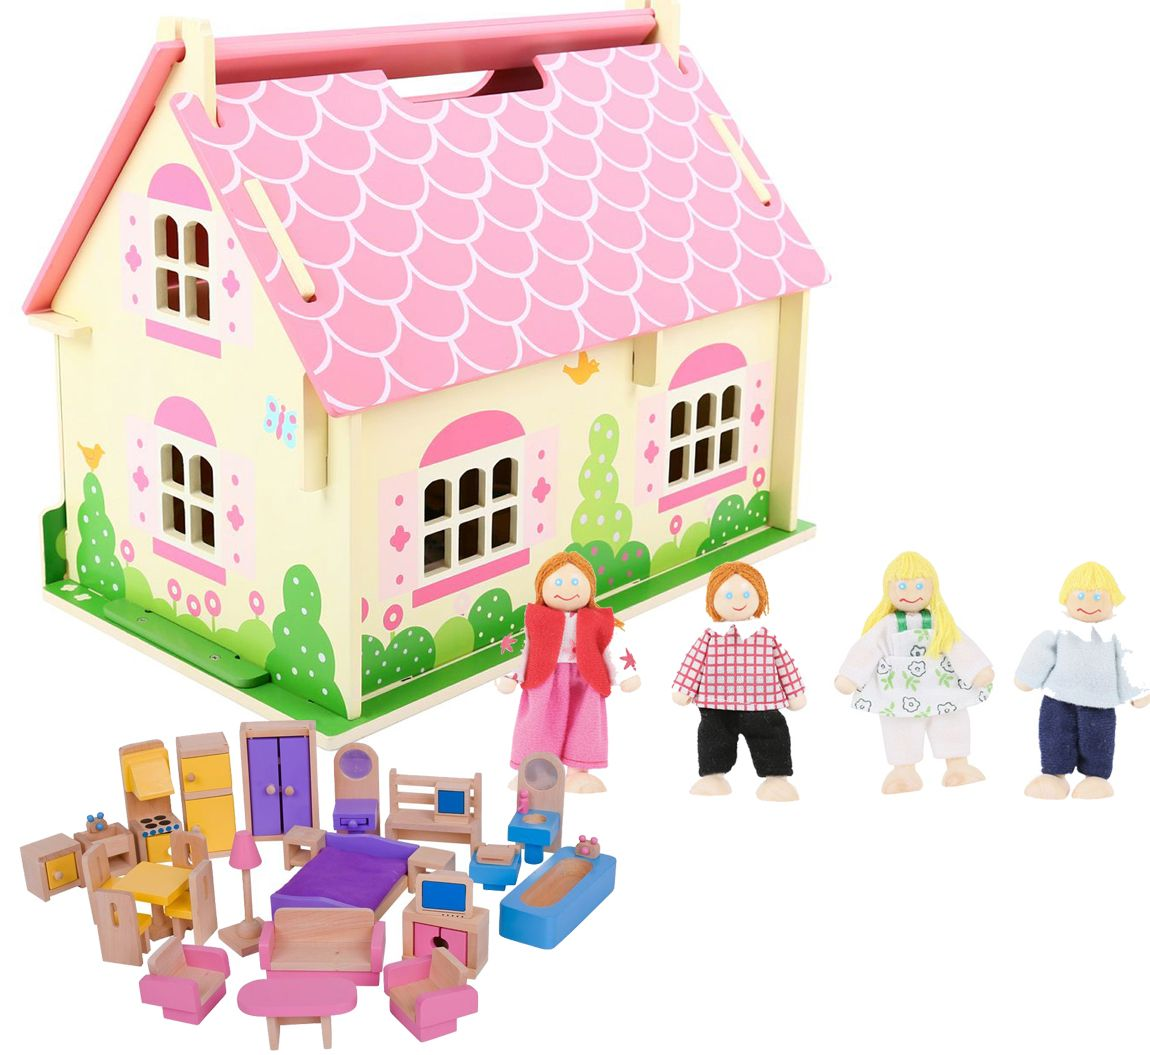 Bigjigs Blossom Cottage Dolls House + Furniture & Family